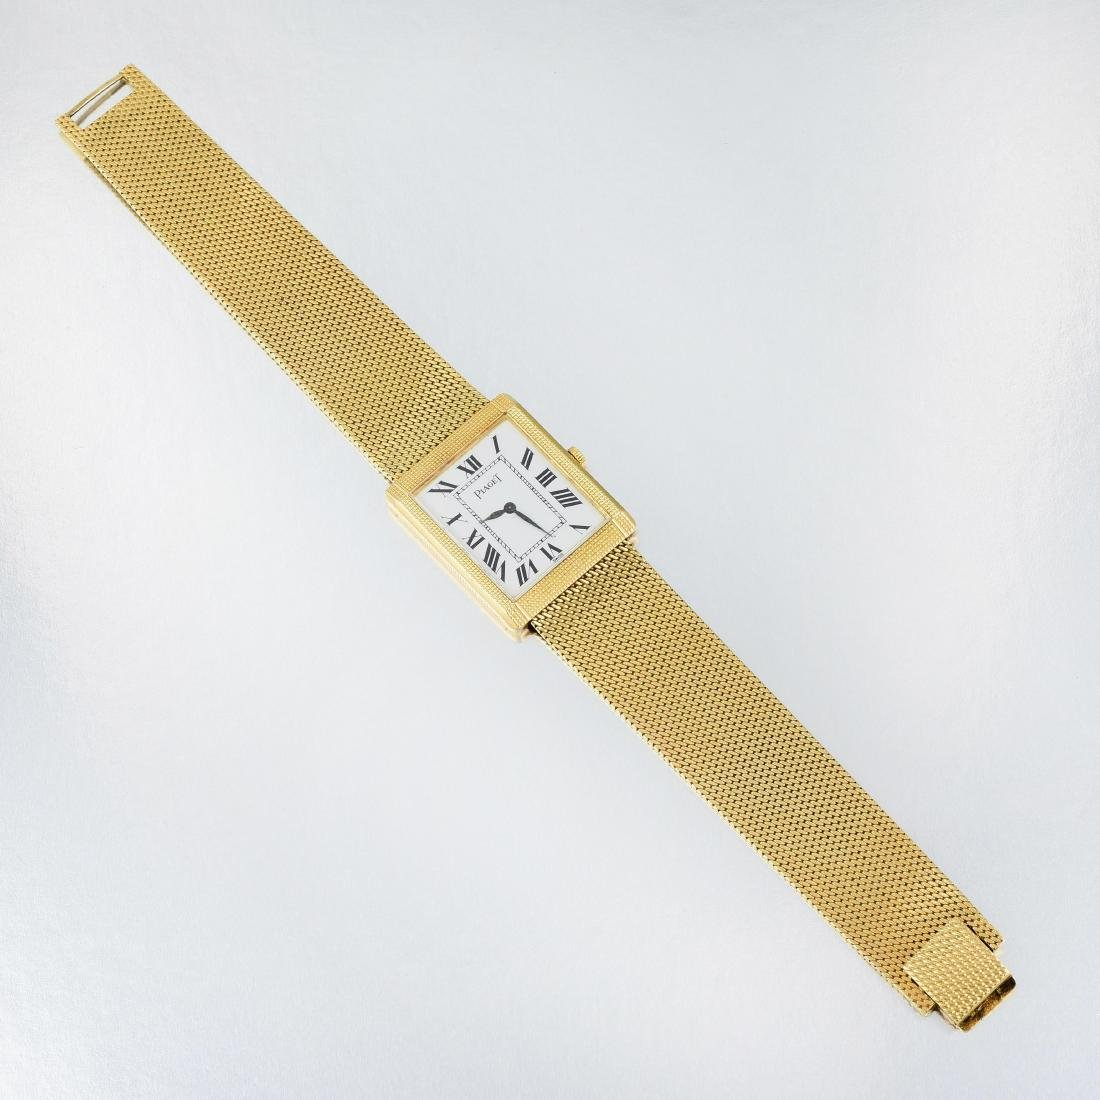 Piaget Ref. 9151 in 18K Gold - 2